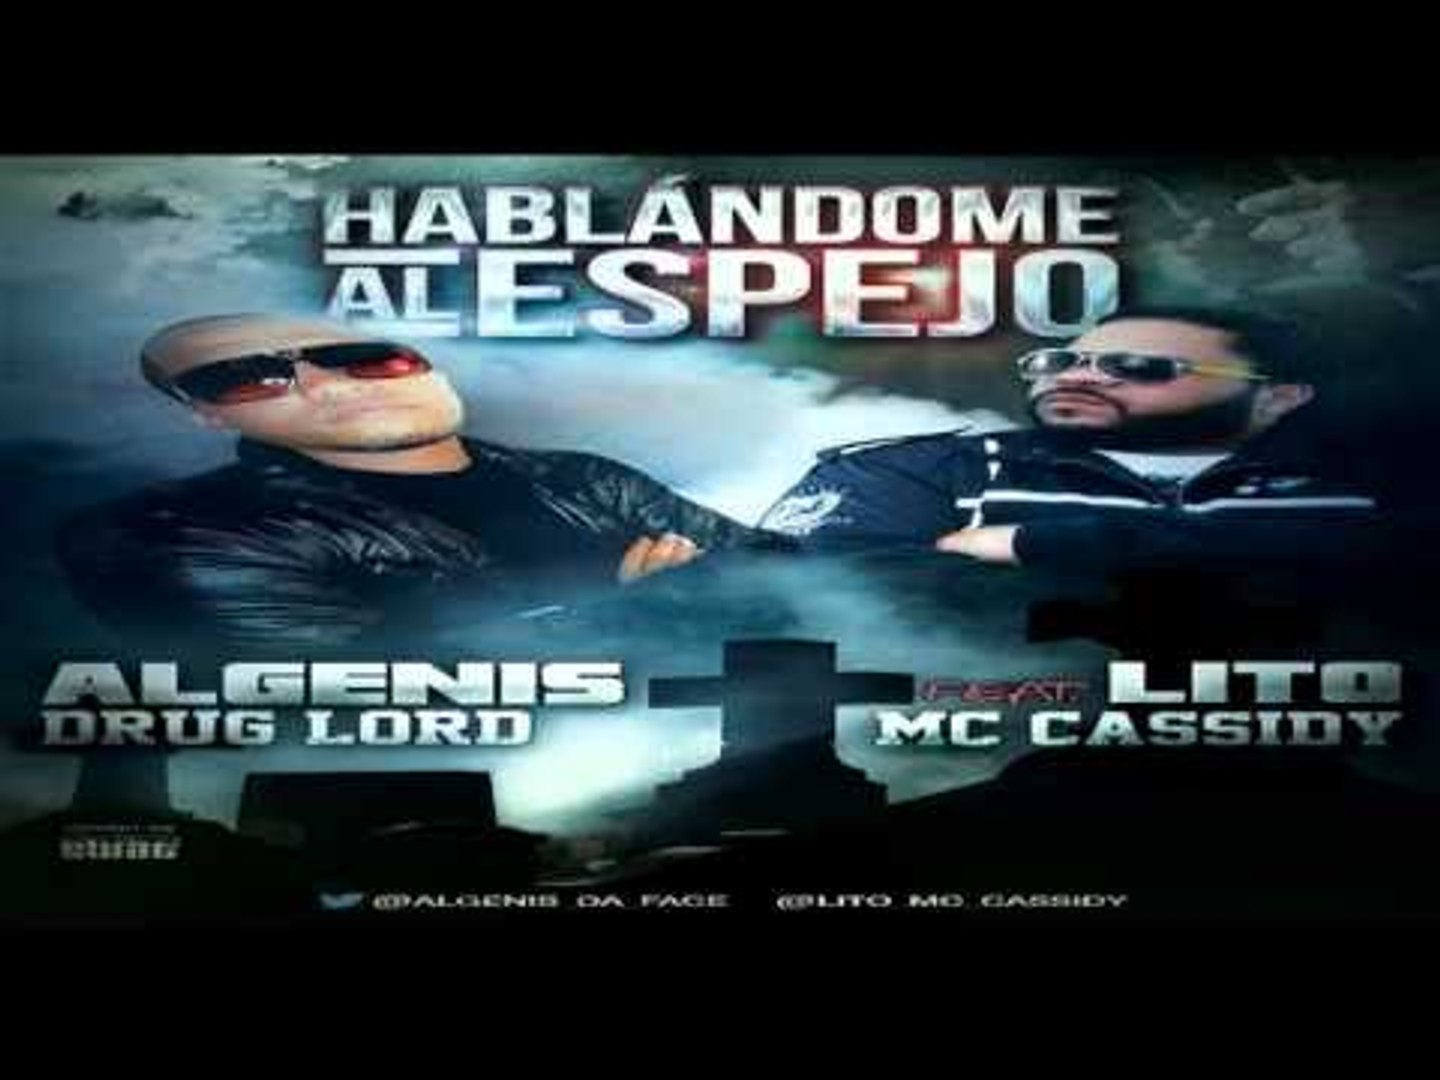 LITO MC CASSIDY FT ALGENIS DRUG LORD MIRANDOME AL ESPEJO PROD BY LADCANI NEW 2012